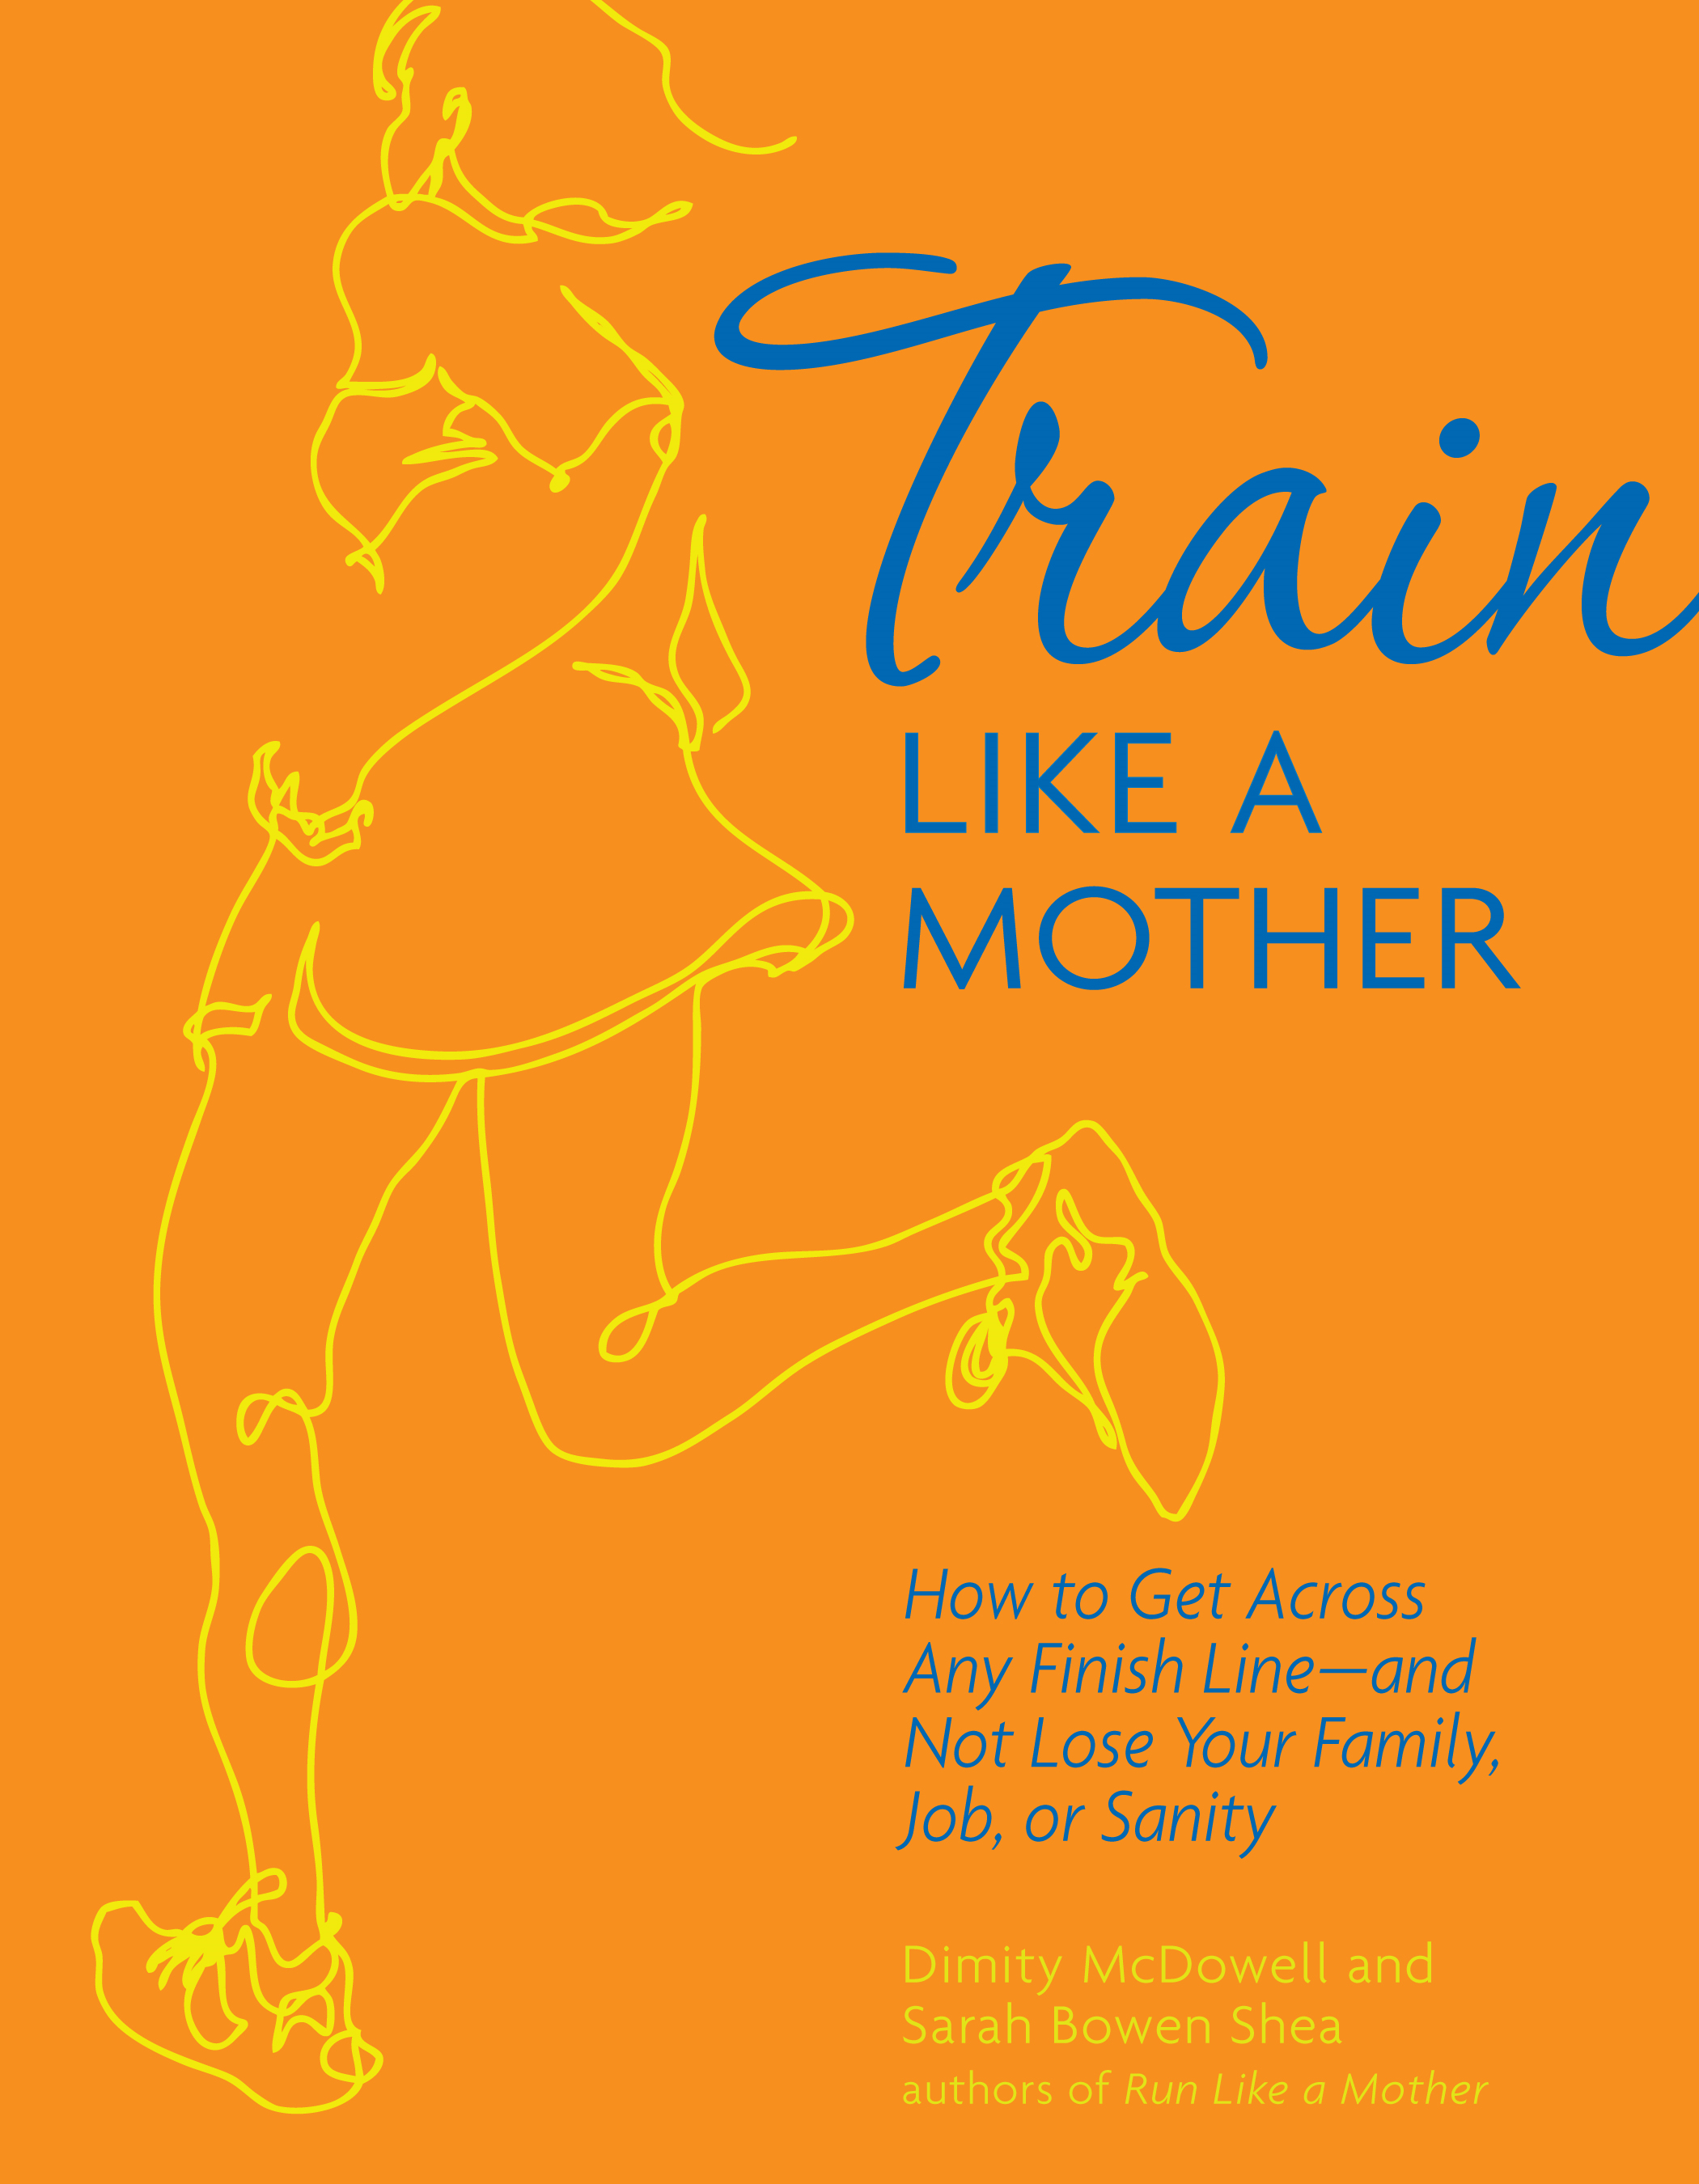 Train Like a Mother: How to Get Across Any Finish Line—and Not Lose Your Family, Job, or Sanity